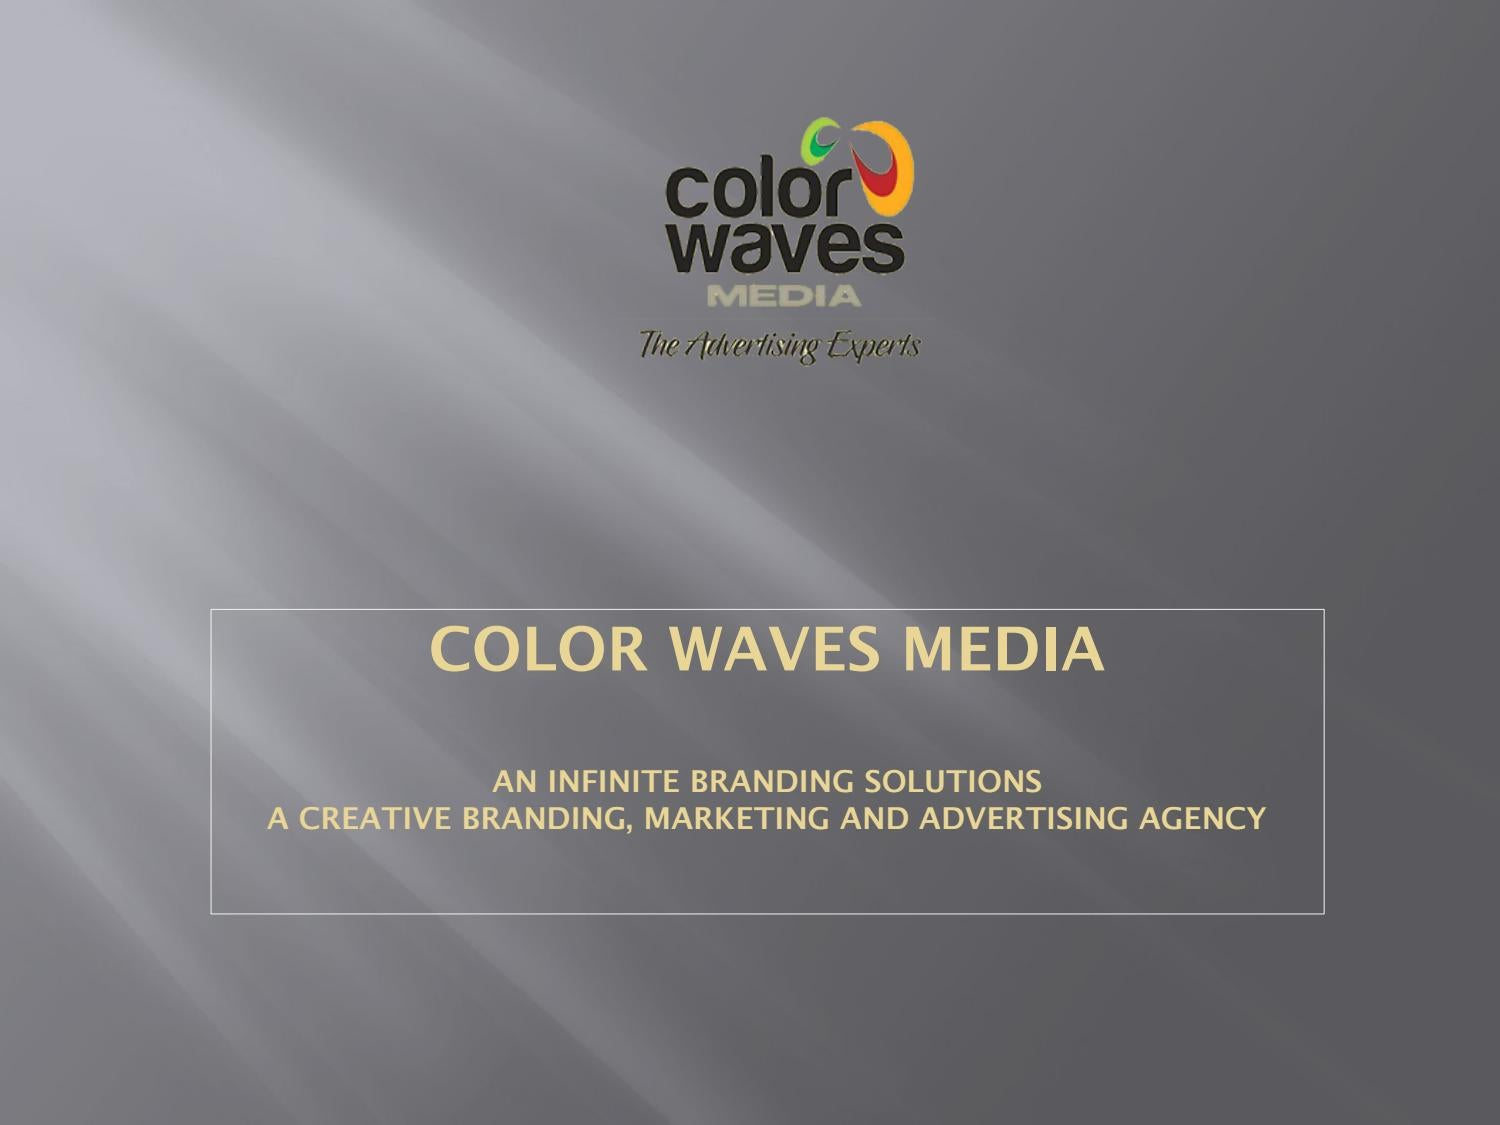 Color waves media-Top Digital Marketing Agency in Hyderabad by Color